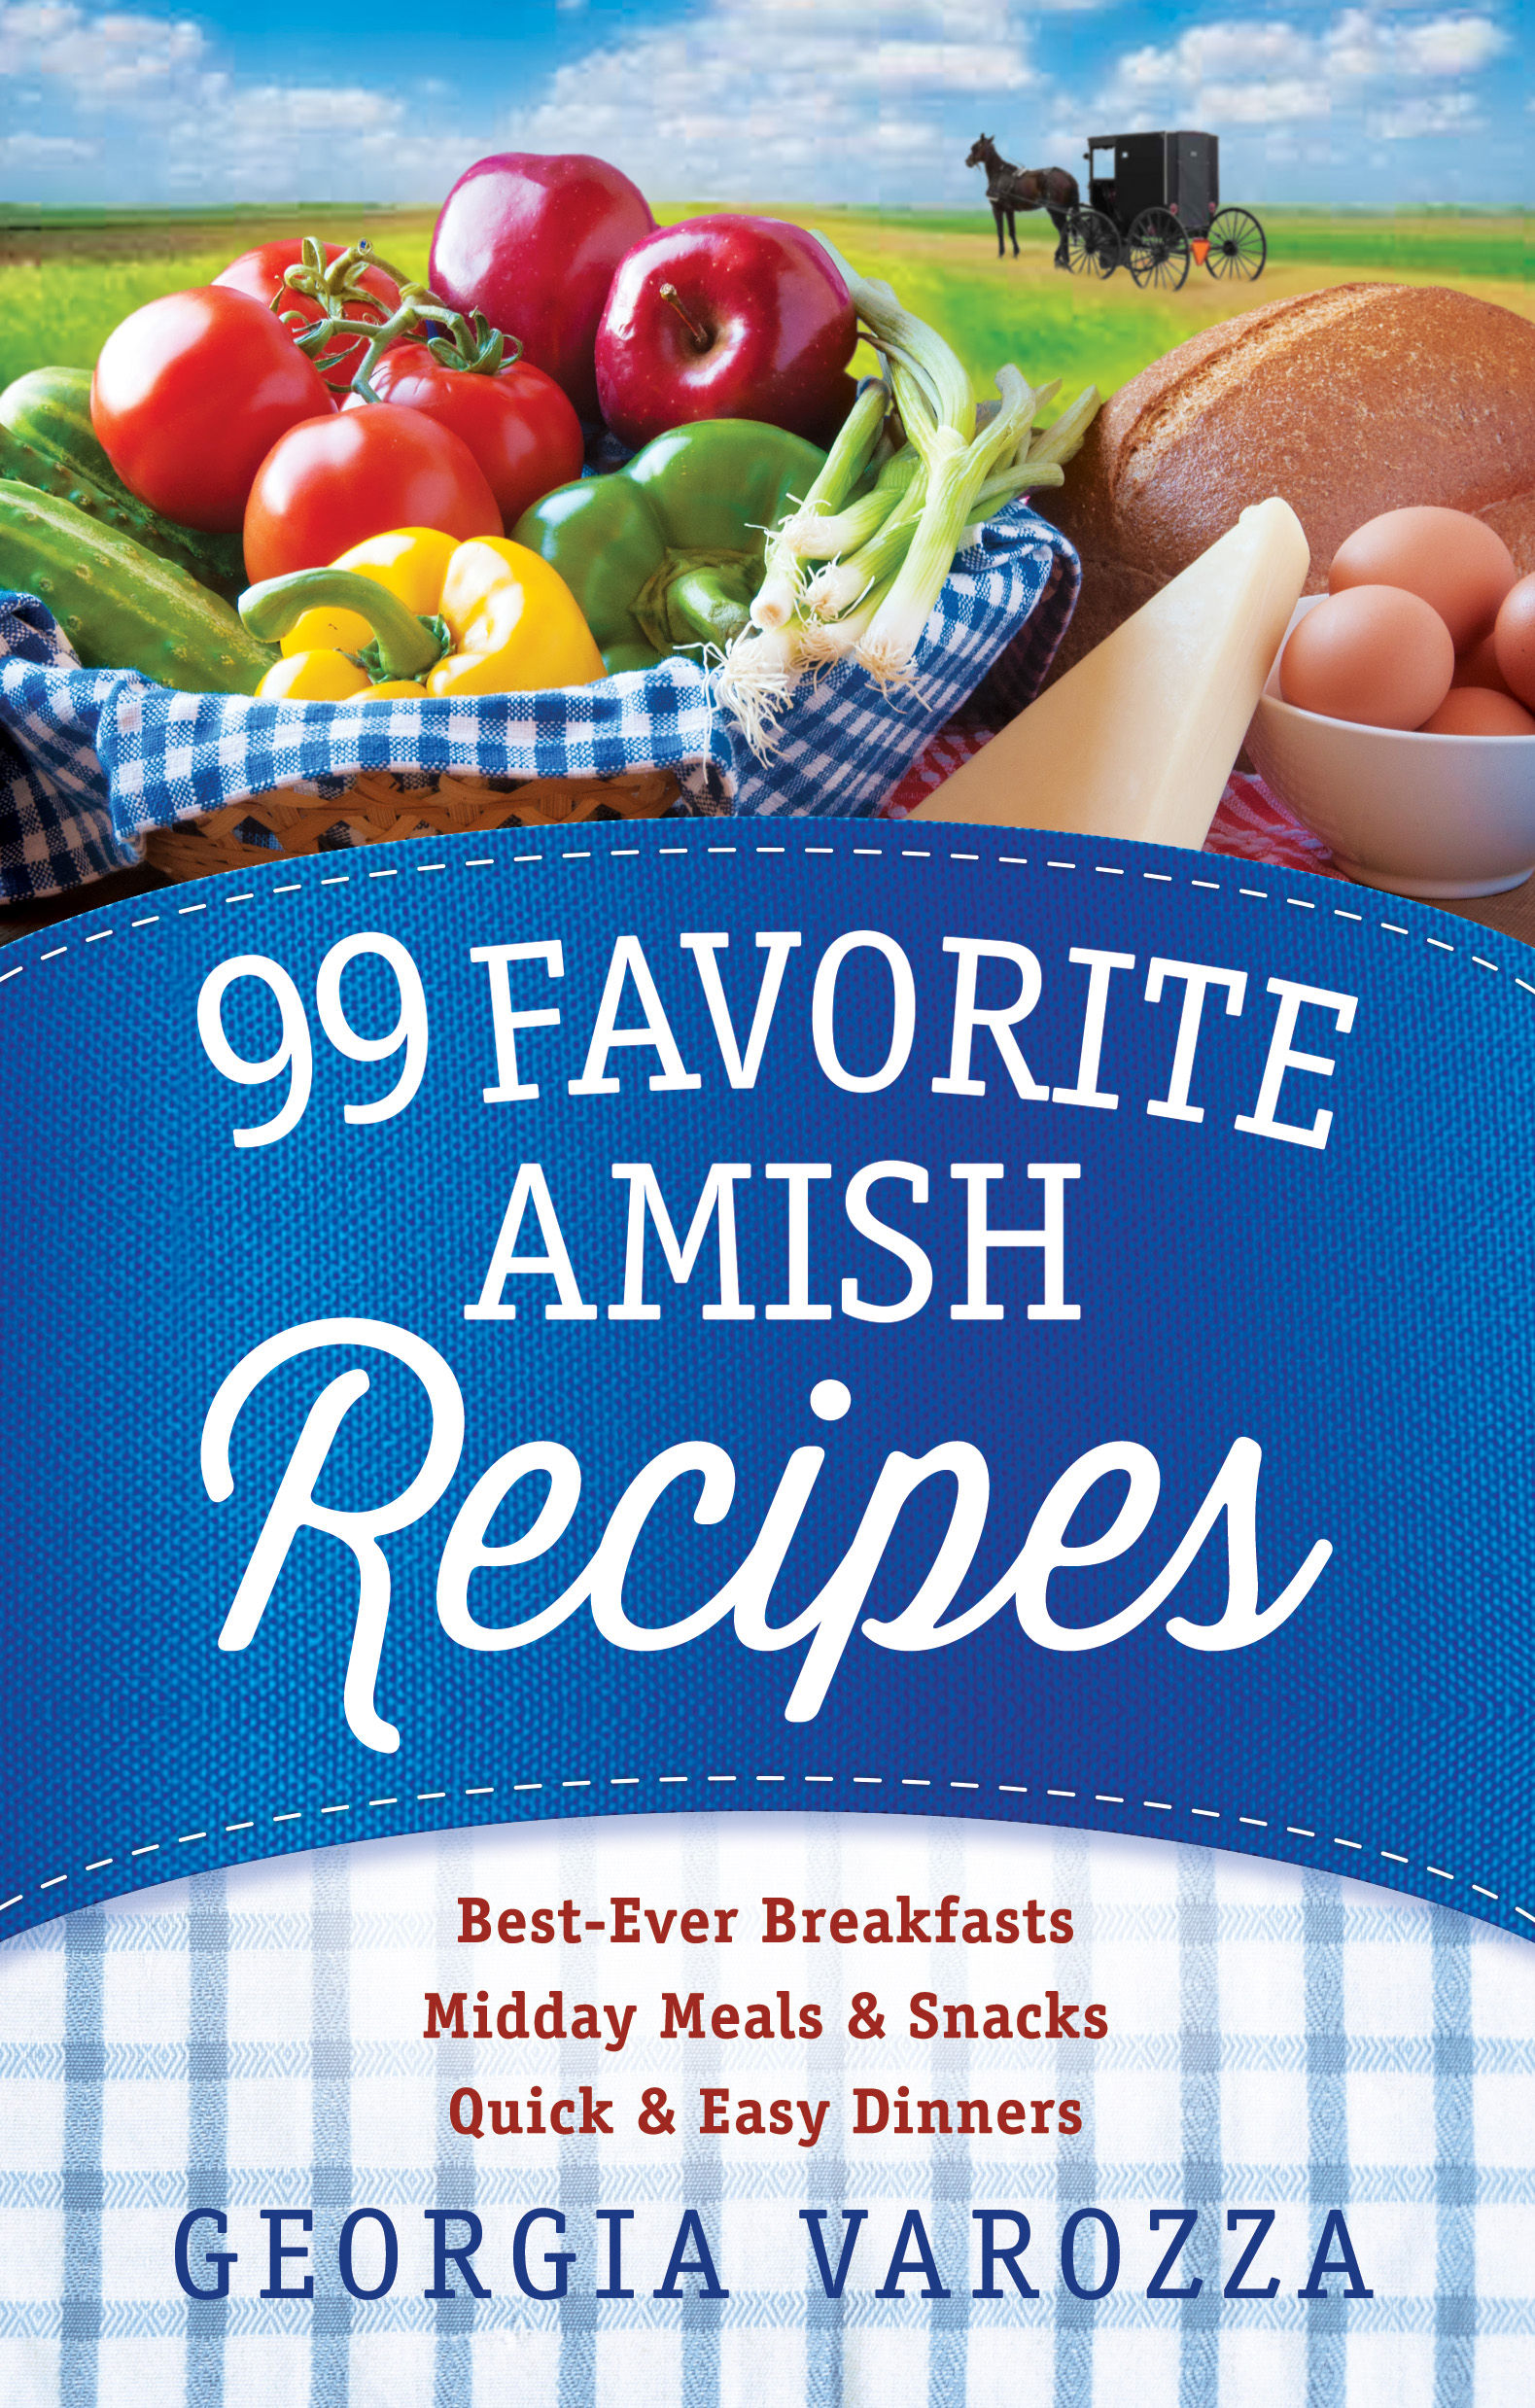 99 Favorite Amish Recipes *Best-Ever Breakfasts *Midday Meals and Snacks *Quick and Easy Dinners